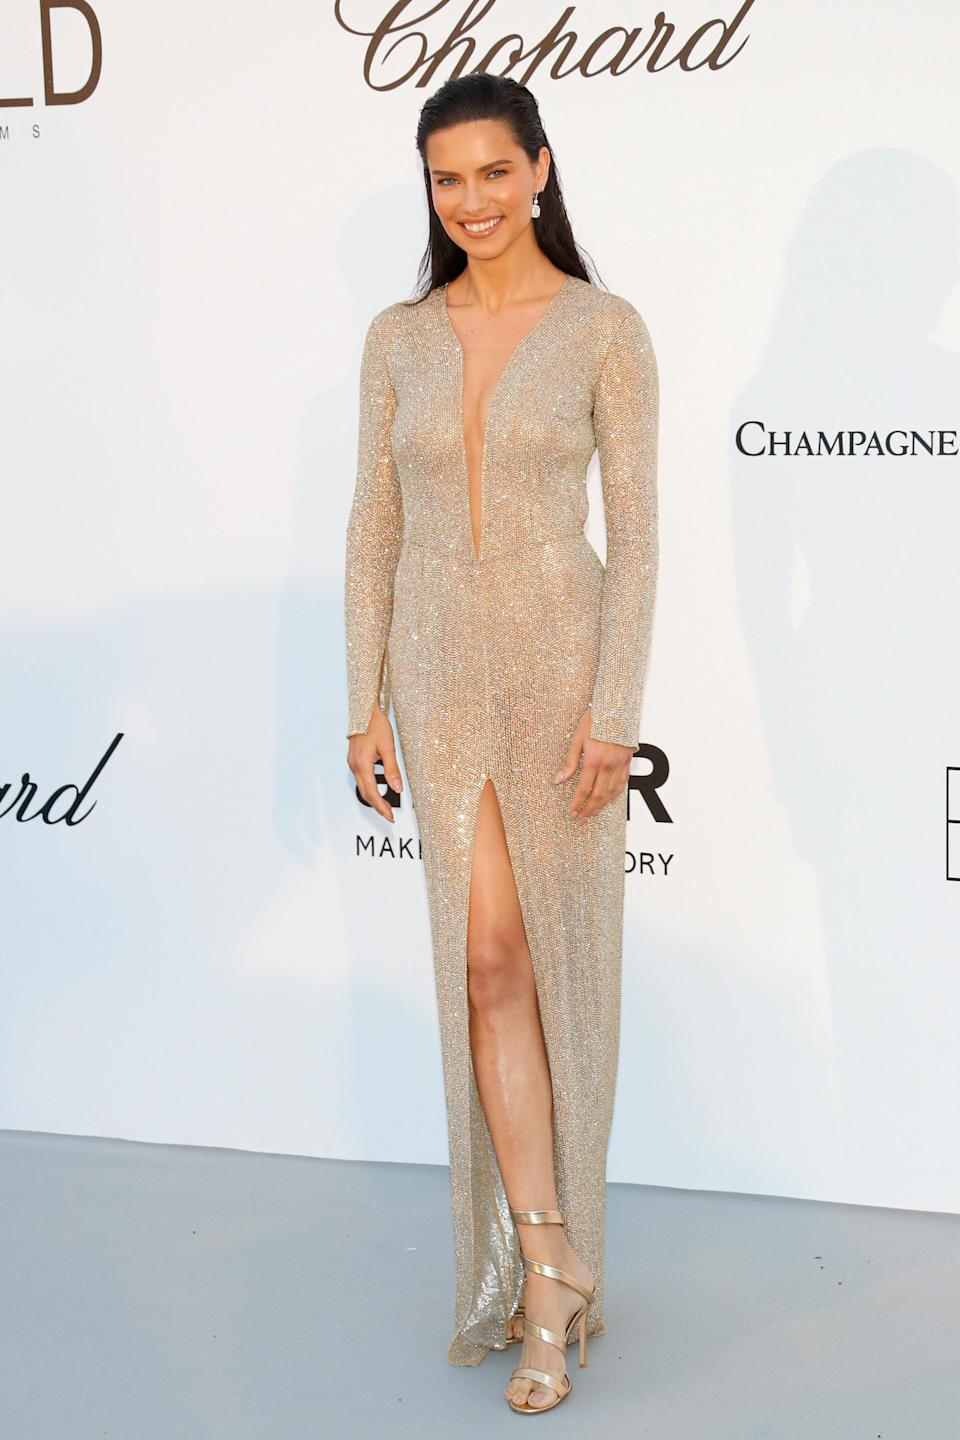 <p>For the 2018 amfAR Gala in Cannes, Adriana Lima wore a metallic thigh-high split dress and looked every inch the supermodel. [Photo: Getty] </p>